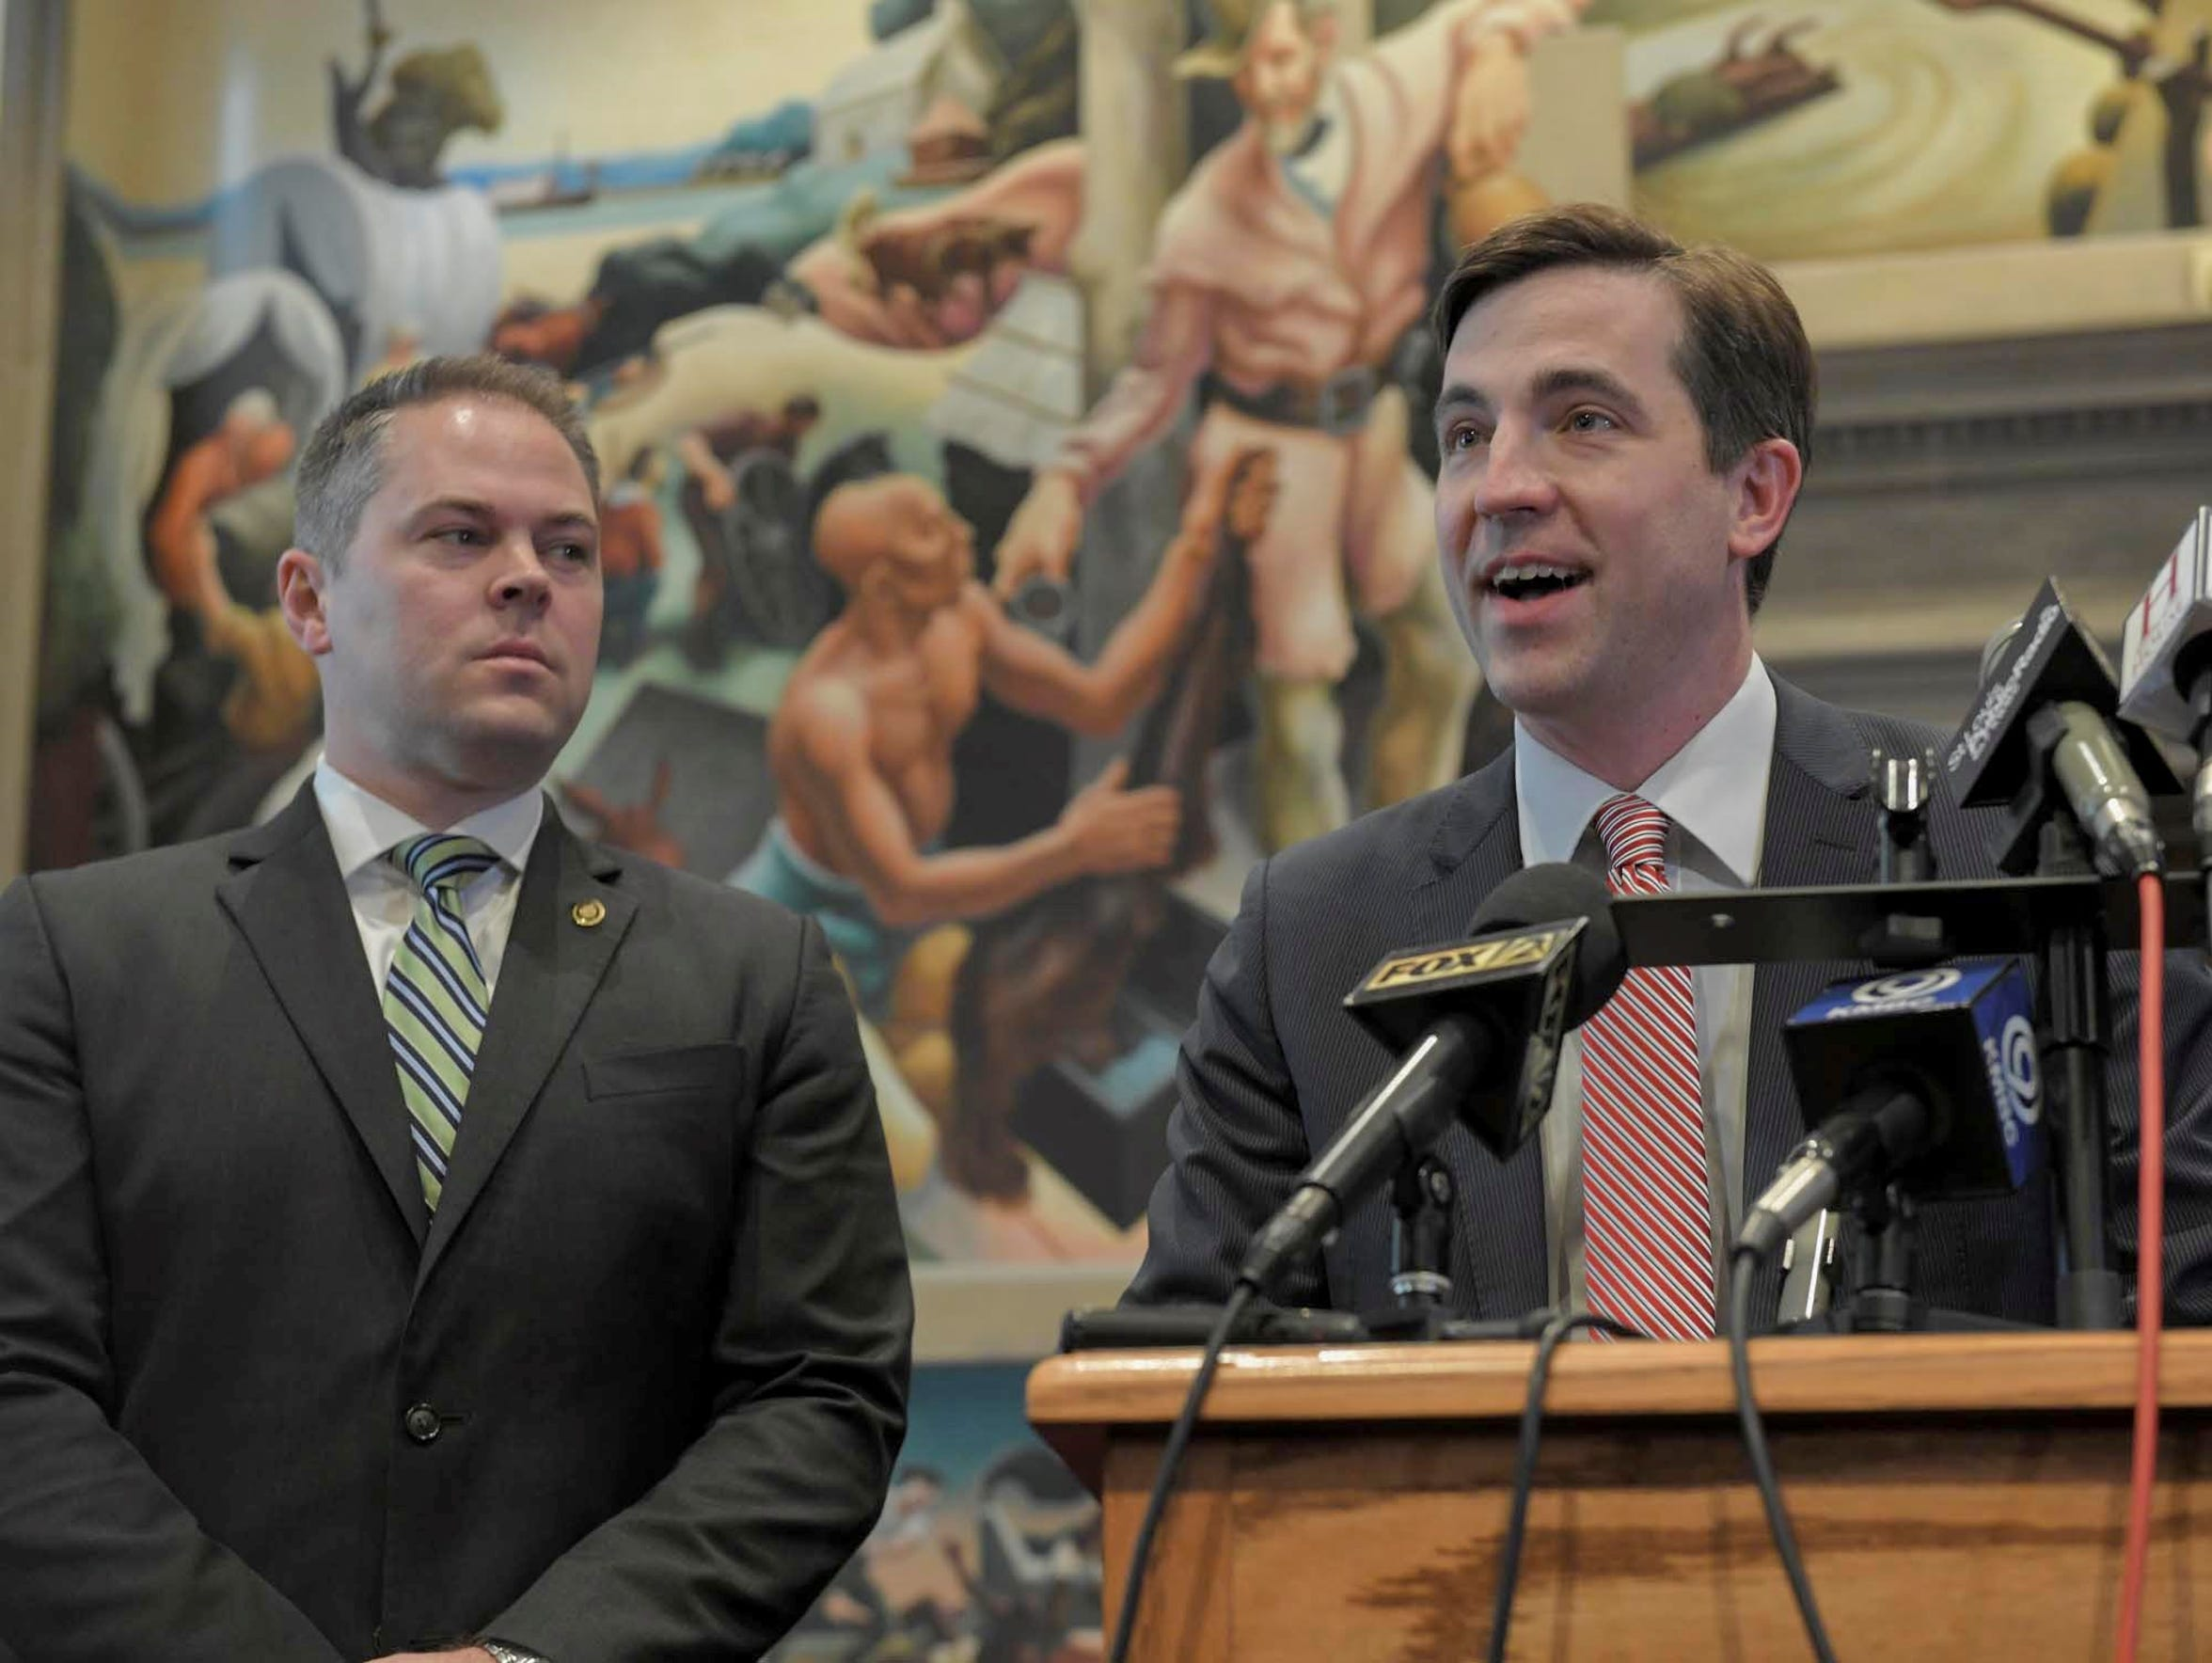 Rep. Jay Barnes, right, and House Speaker Pro Tem Elijah Haahr on Feb. 26 named the members of a committee to investigate Gov. Eric Greitens following the governor's felony indictment.